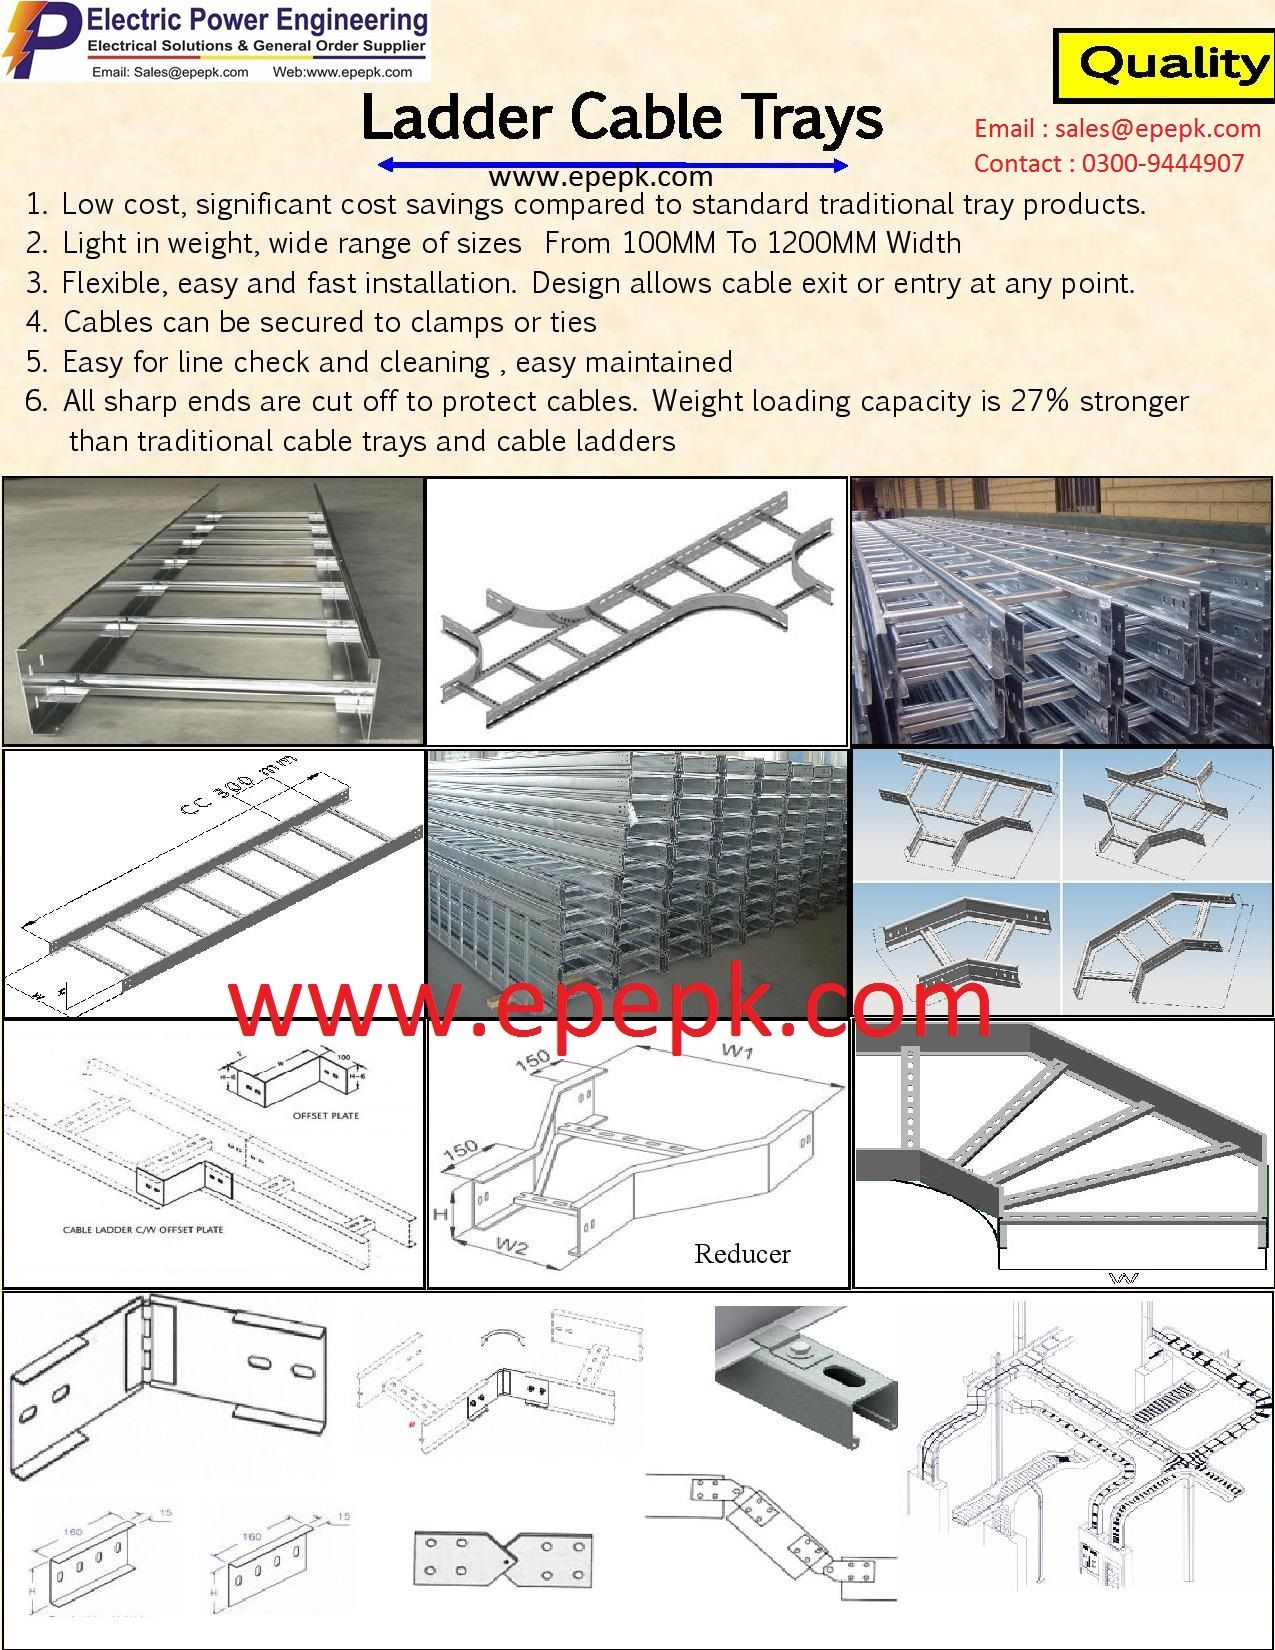 Ladder Gi Cable Tray Ladder Hot Dip Galvanized Cable Tray Ladder Powder Coated Cable Tray In 2020 Cable Tray Cable Trays Tray